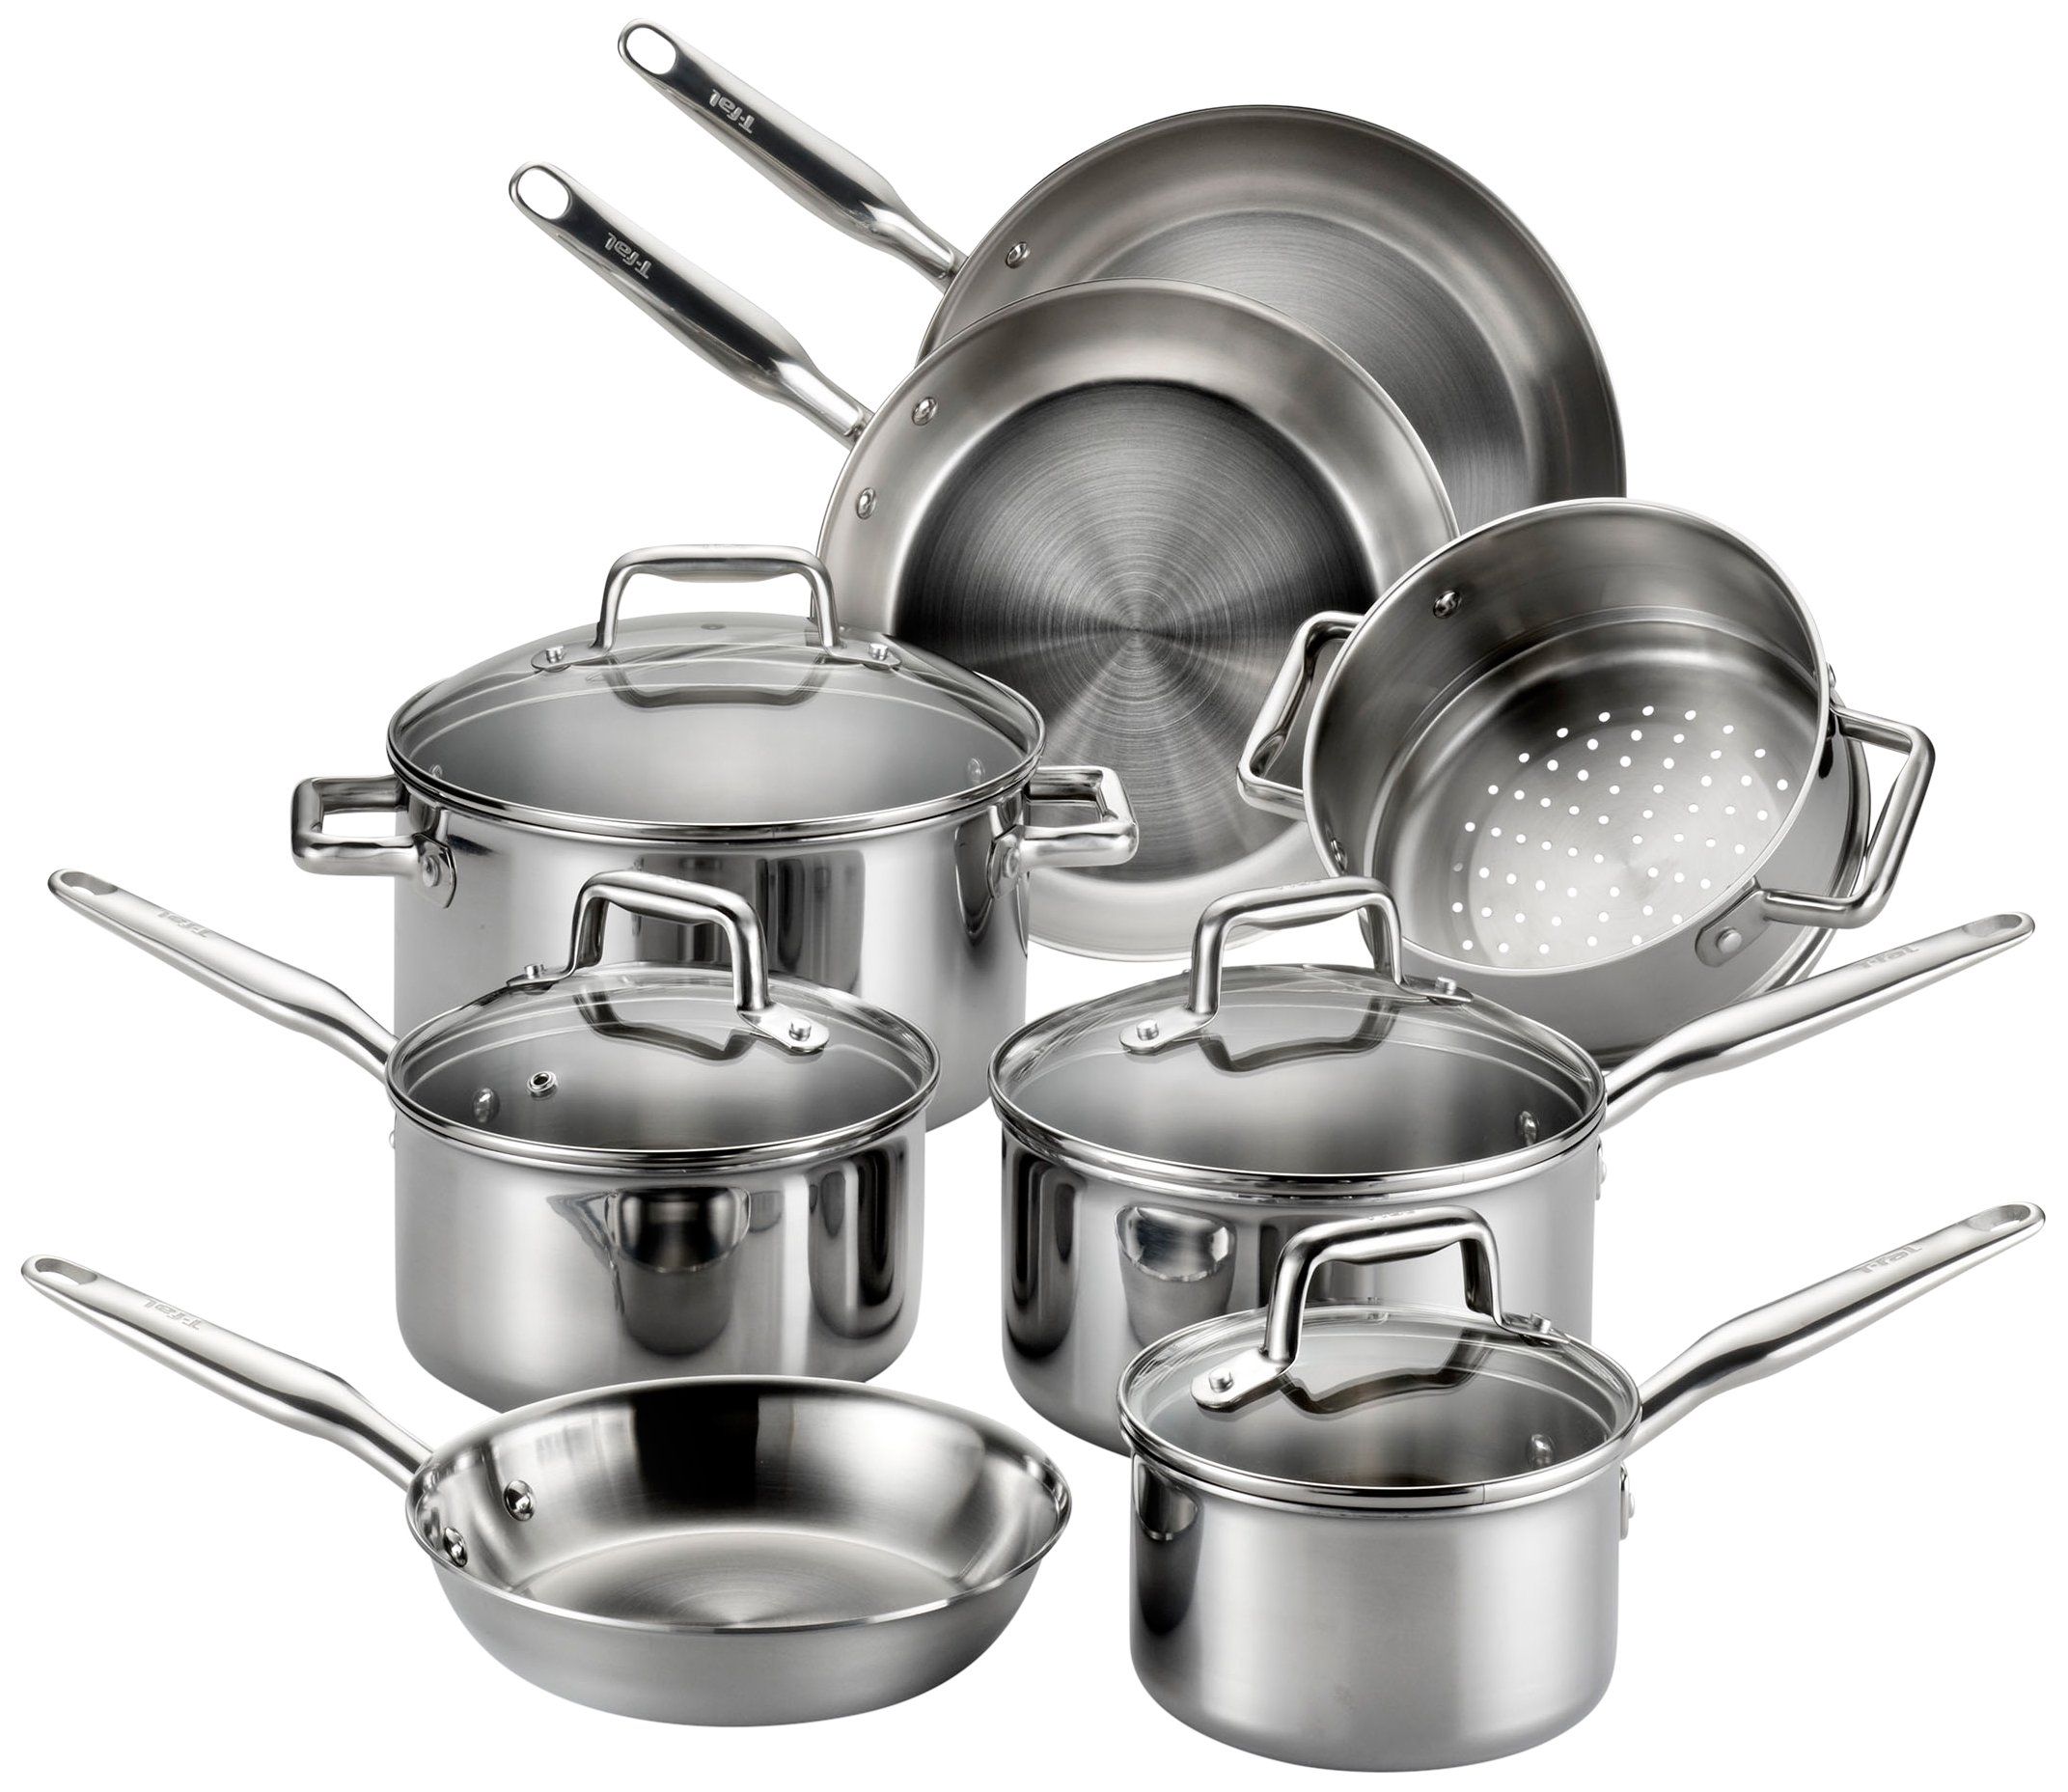 T-fal E469SC Tri-ply Stainless Steel Multi-clad Dishwasher Safe Oven Safe Cookware Set, 12-Piece, Silver by T-fal